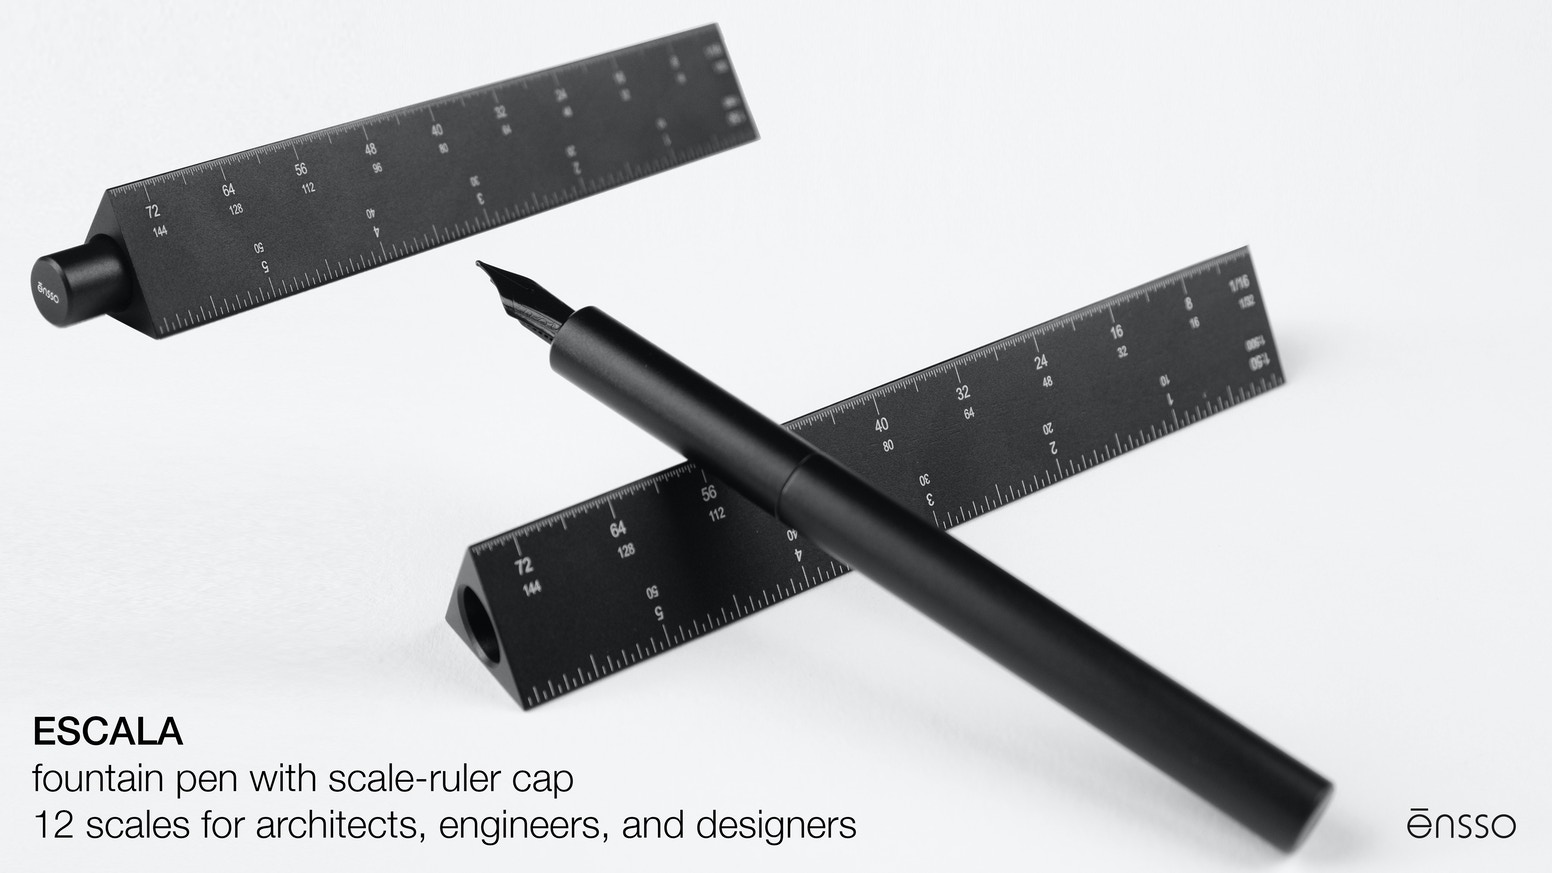 Fountain pen with a cap that serves as scale-ruler for architects, engineers, and designers- graded with 12 metric and imperial scales.